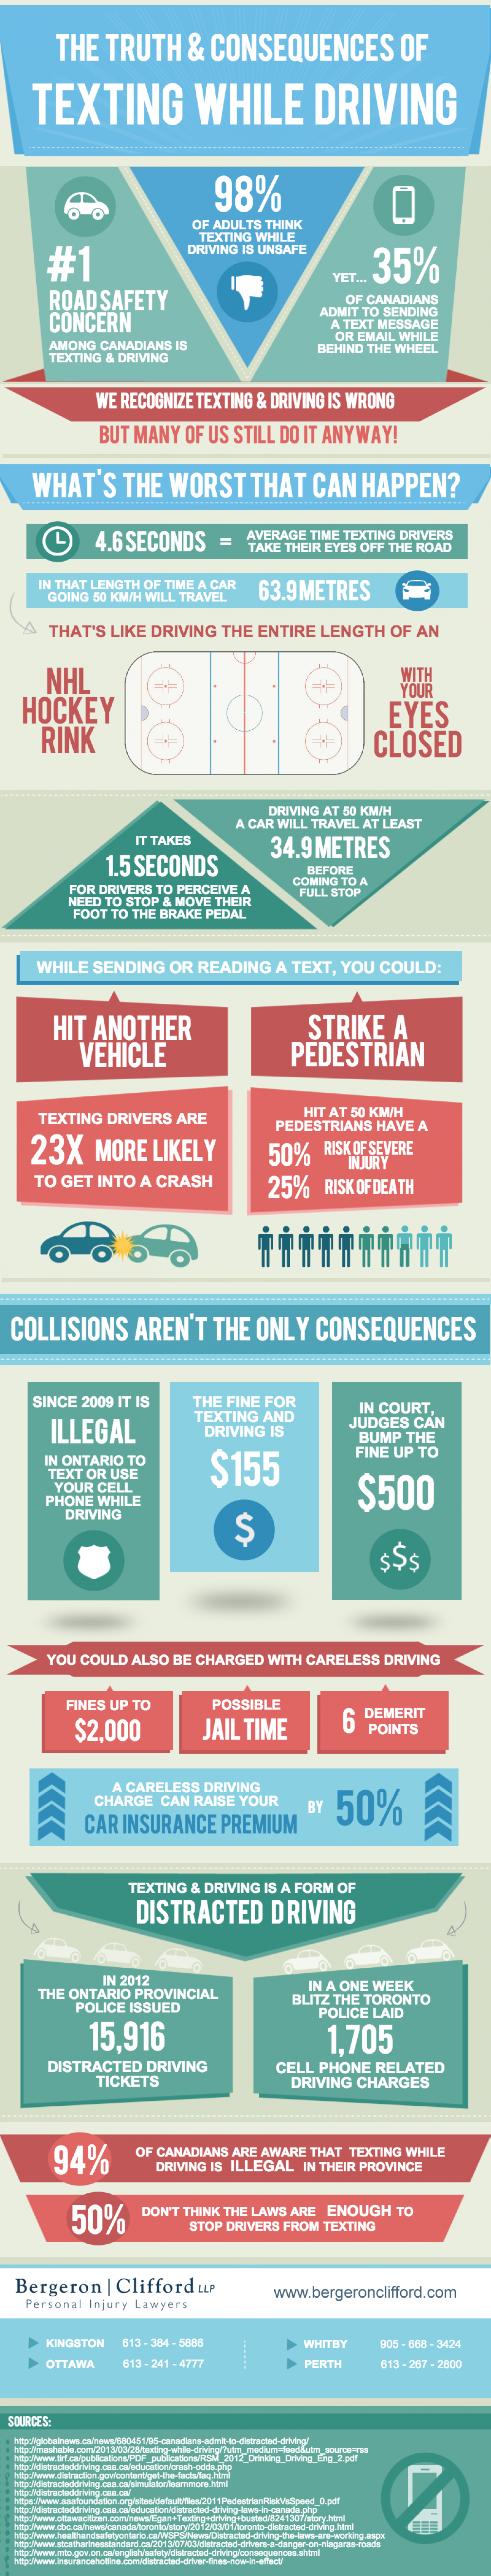 The Truth & Consequences of Texting While Driving Infographic